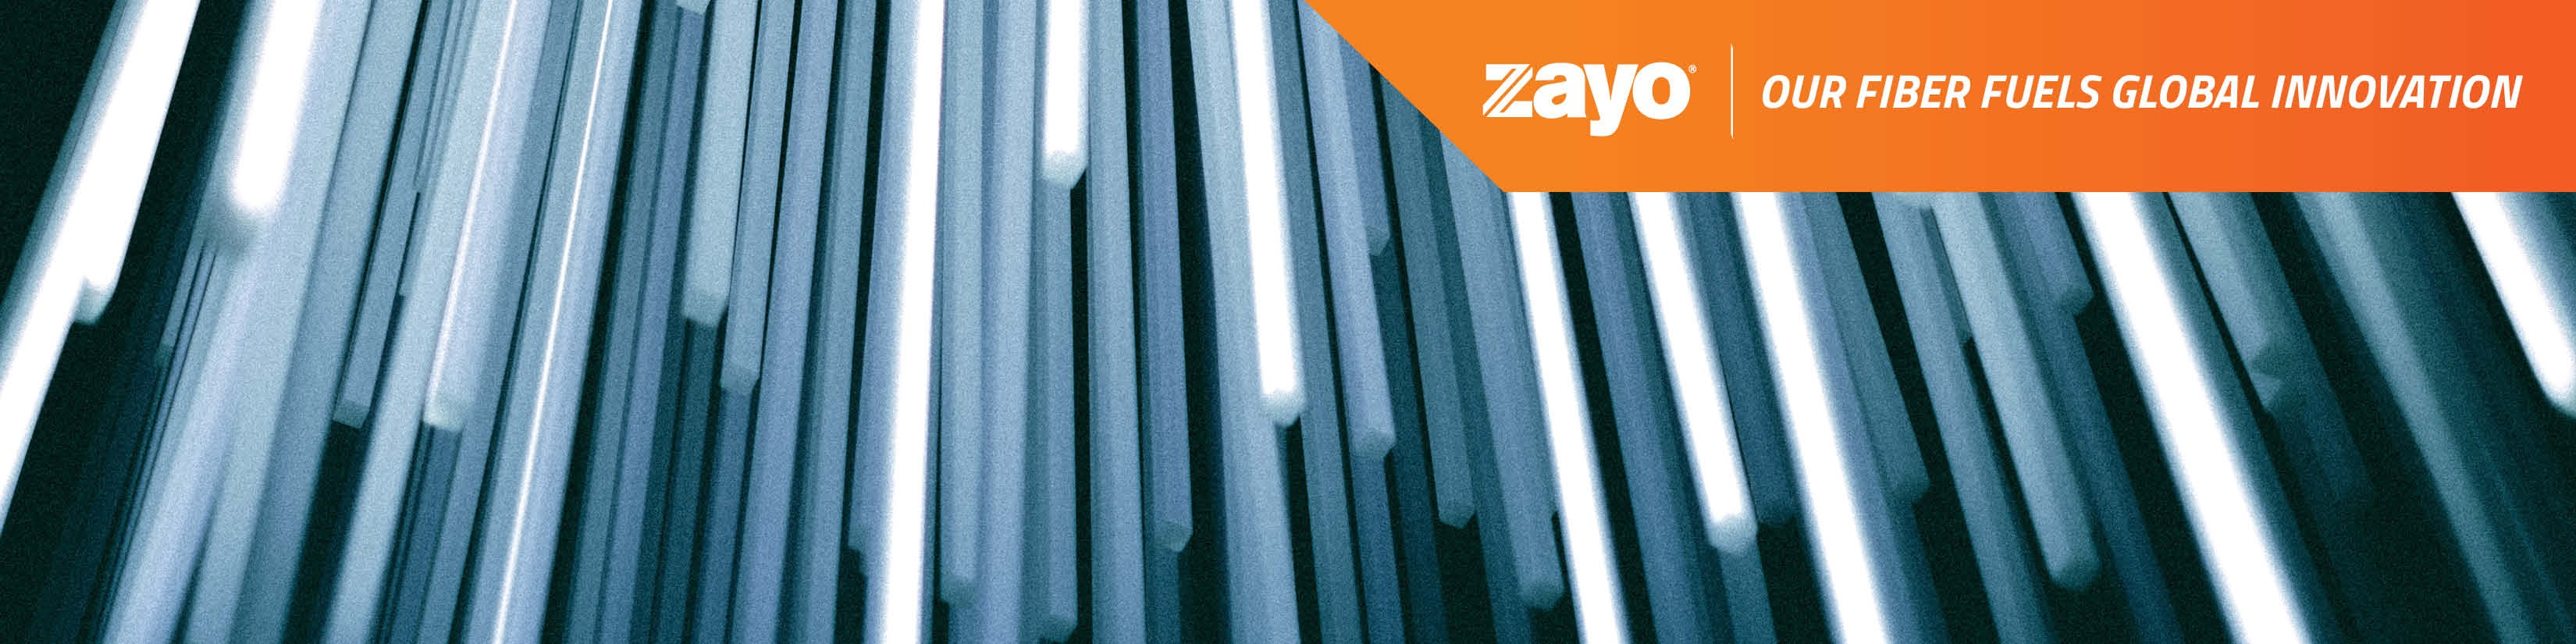 Zayo Group | LinkedIn